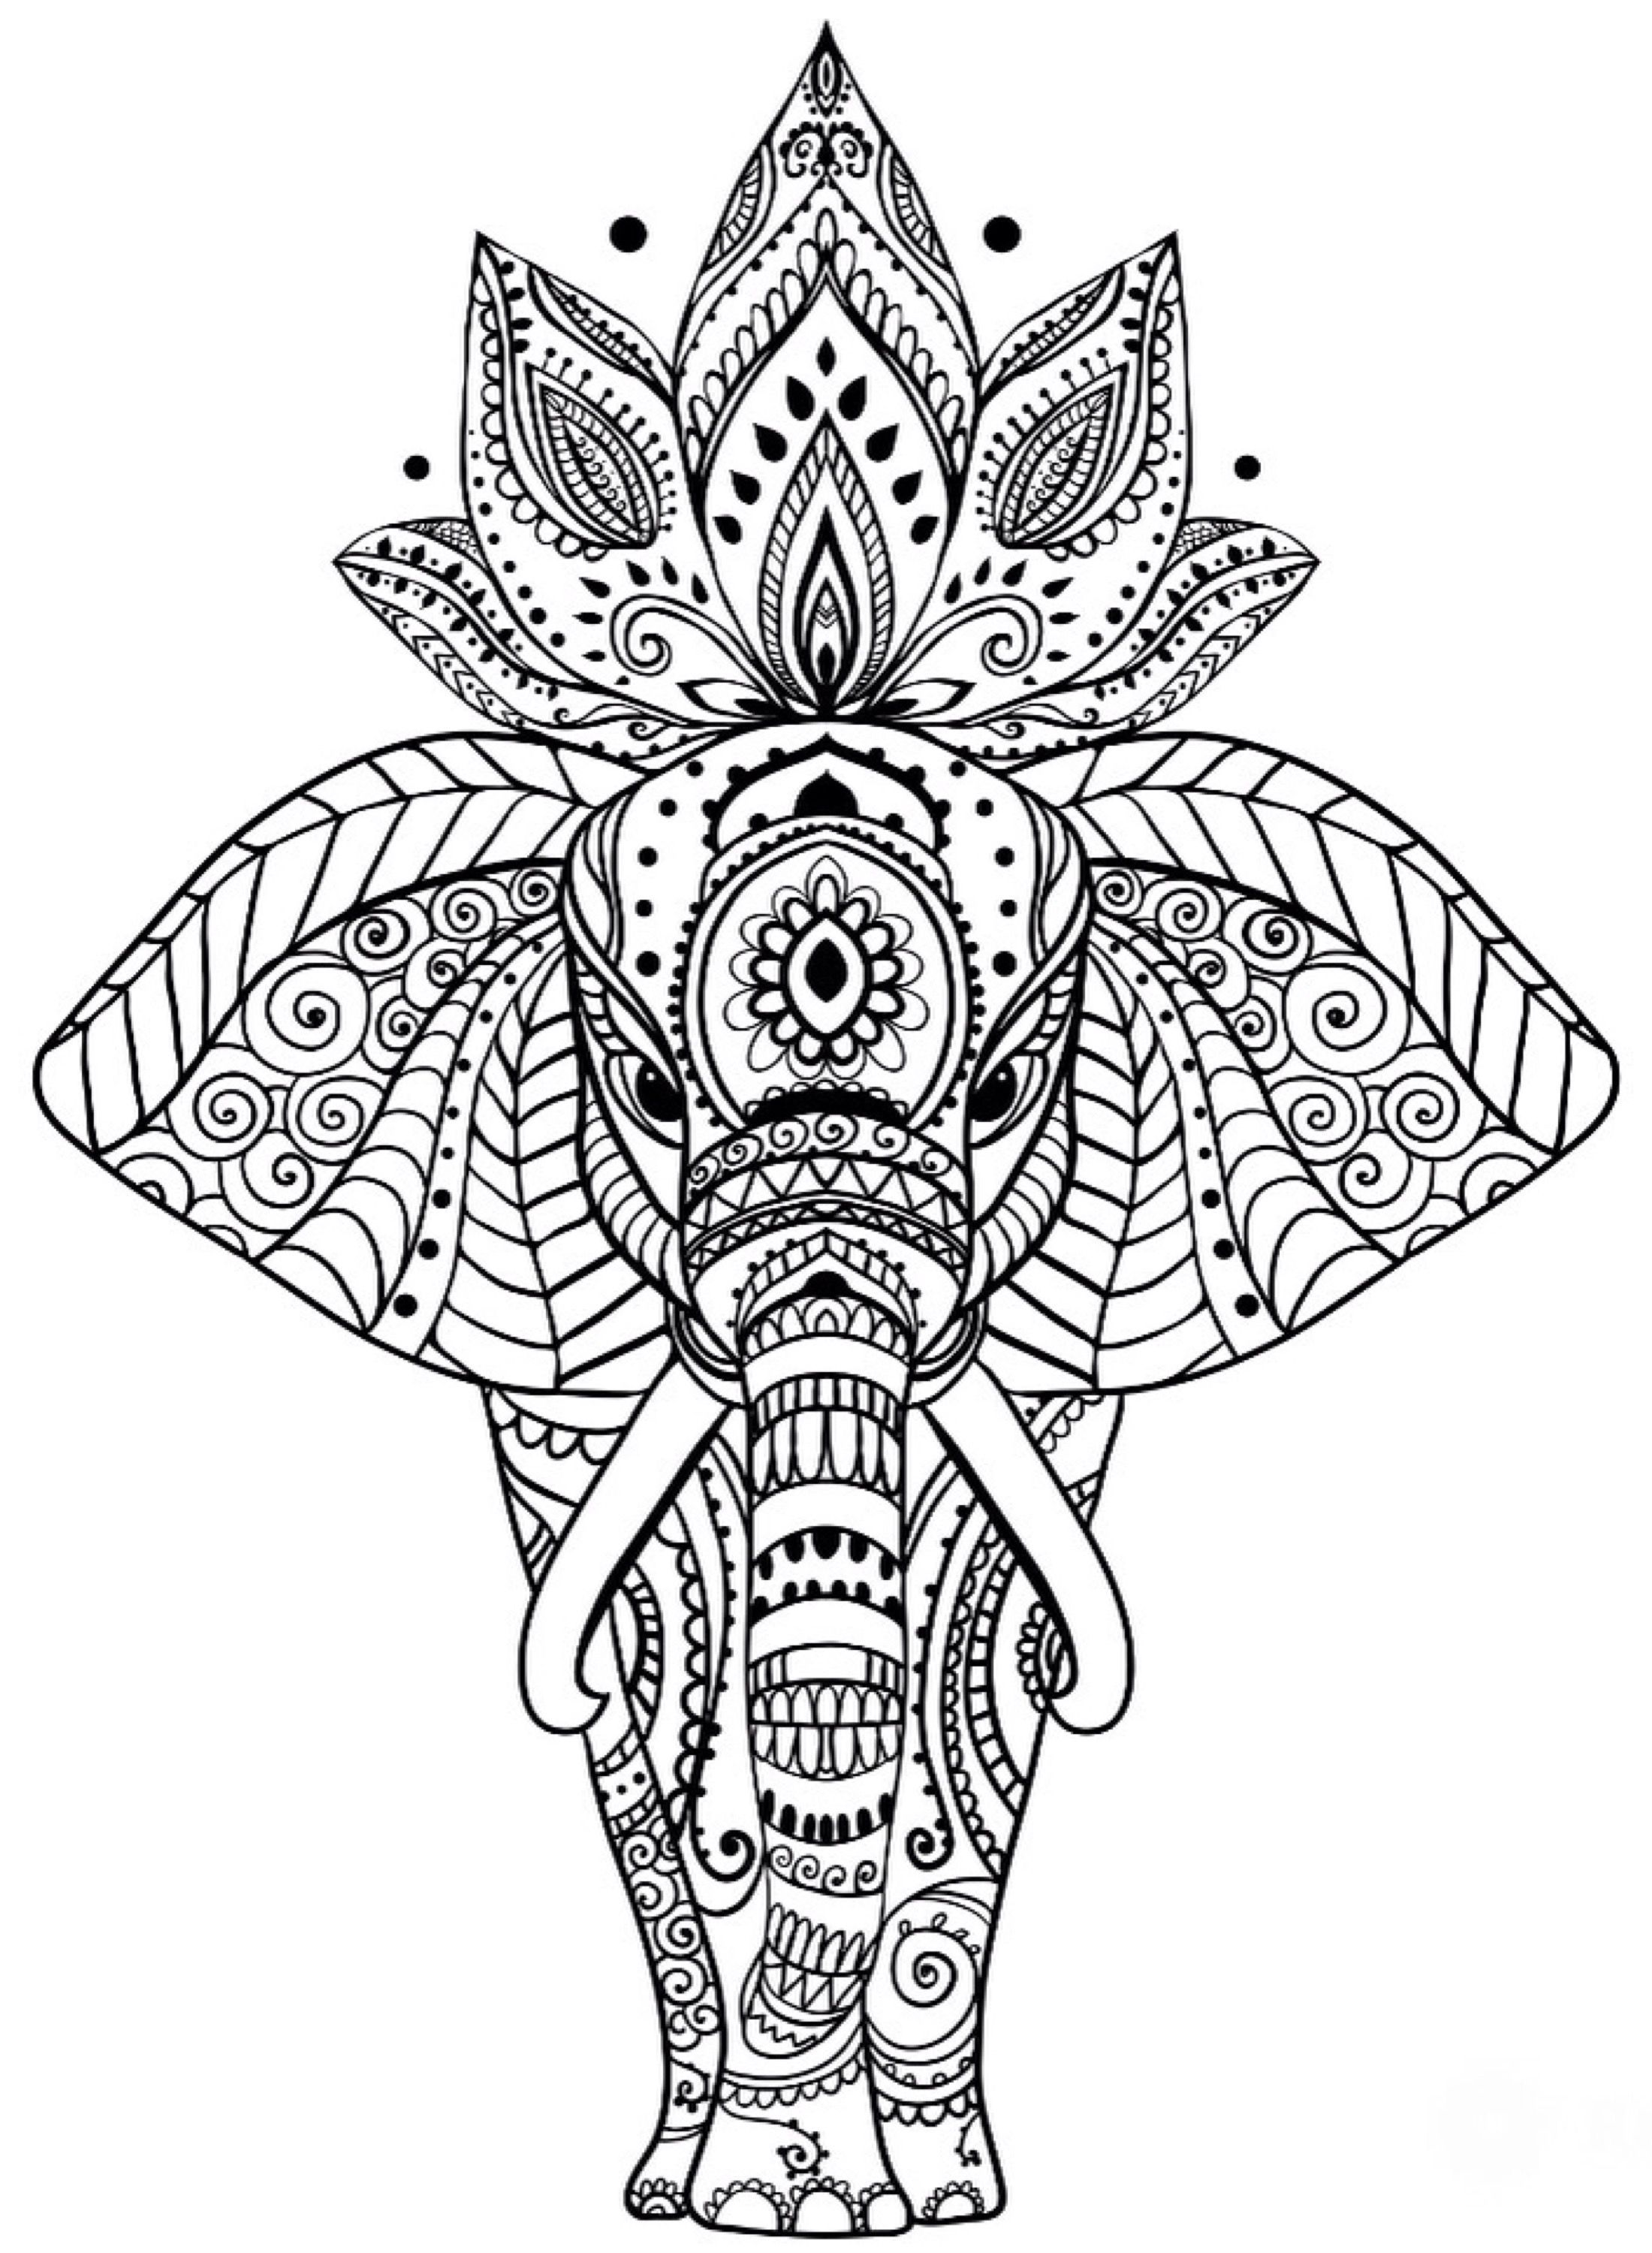 Animal Coloring Pages More Pins Like This One At Fosterginger Pinterest Mandala Boyama Sayfalari Mandala Mandala Art